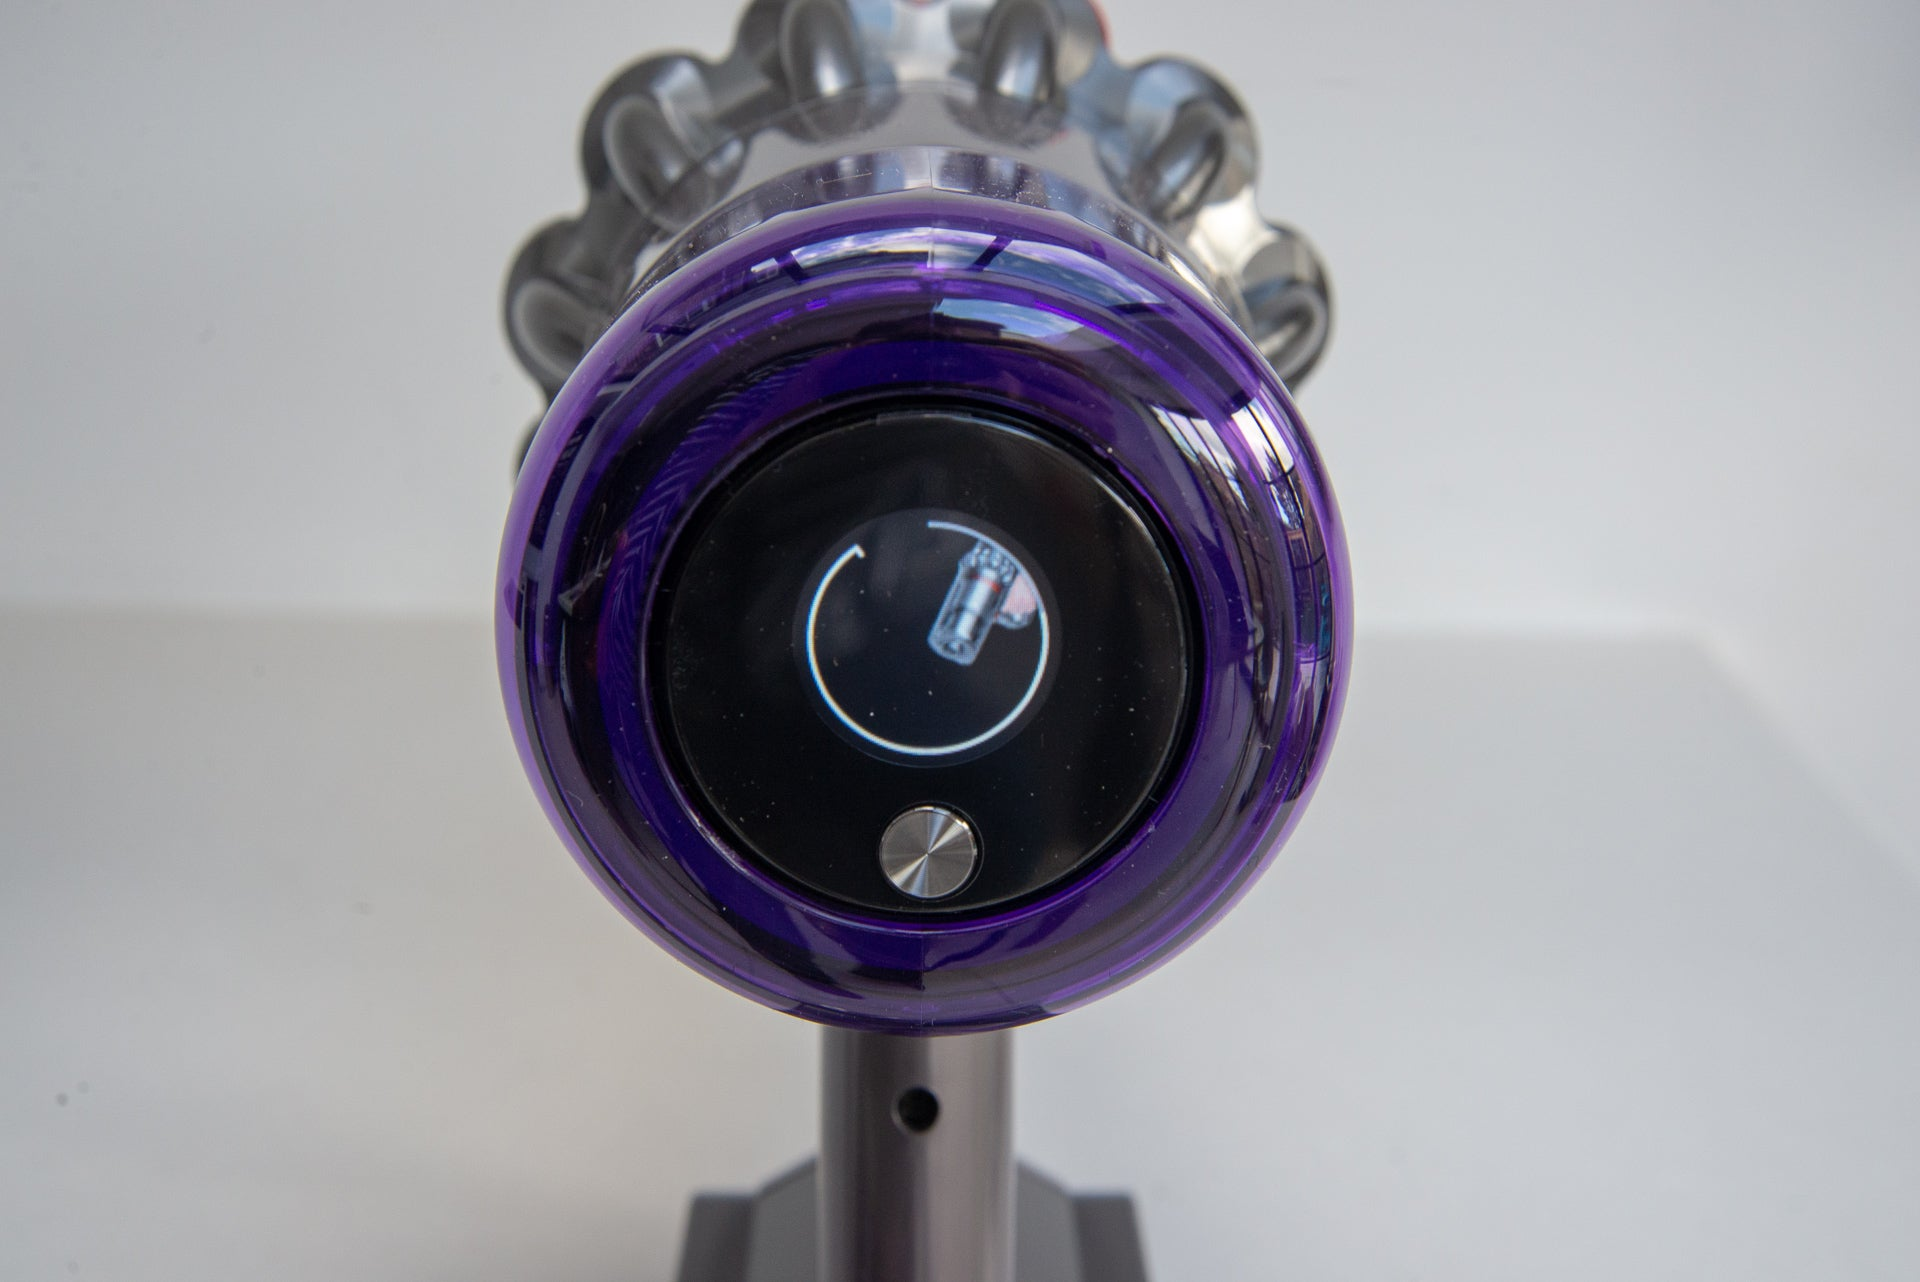 Dyson V11 Absolute screen showing how to clear blockage